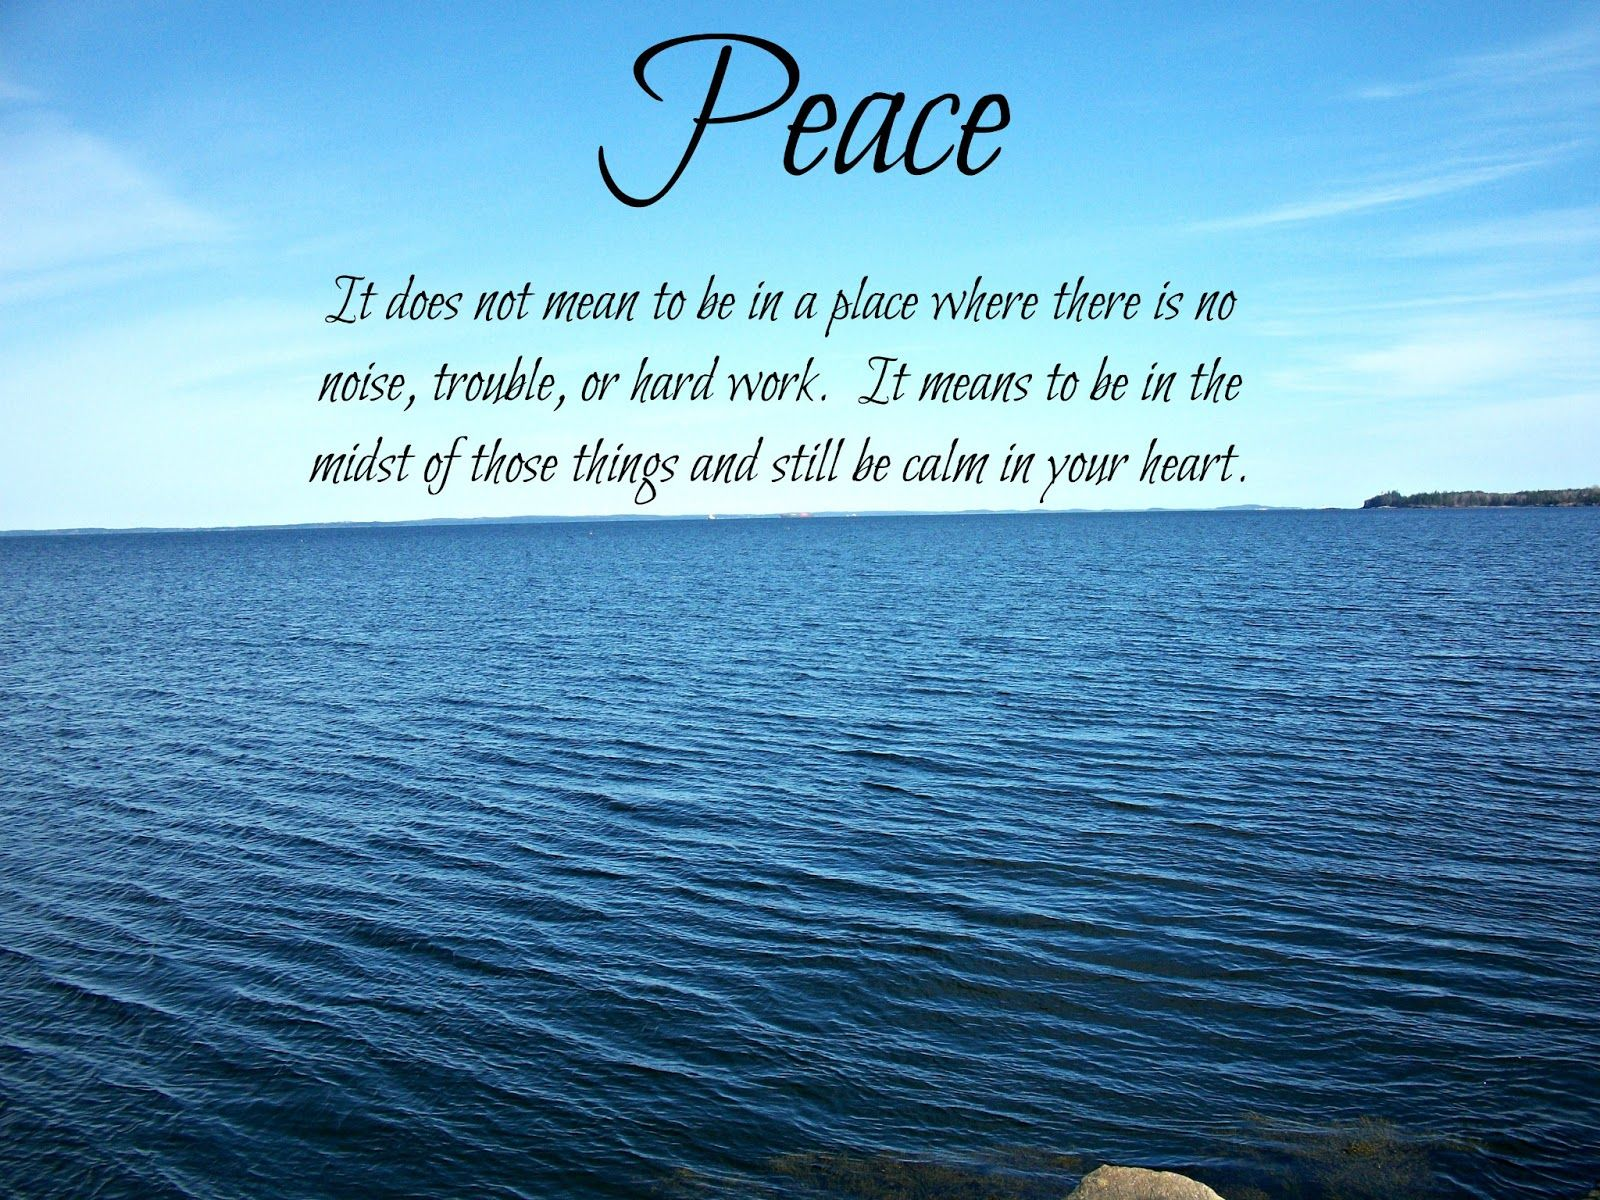 Bible Quotes About Peace Peace   calm in your heart | Inspiration | Pinterest | Peace  Bible Quotes About Peace